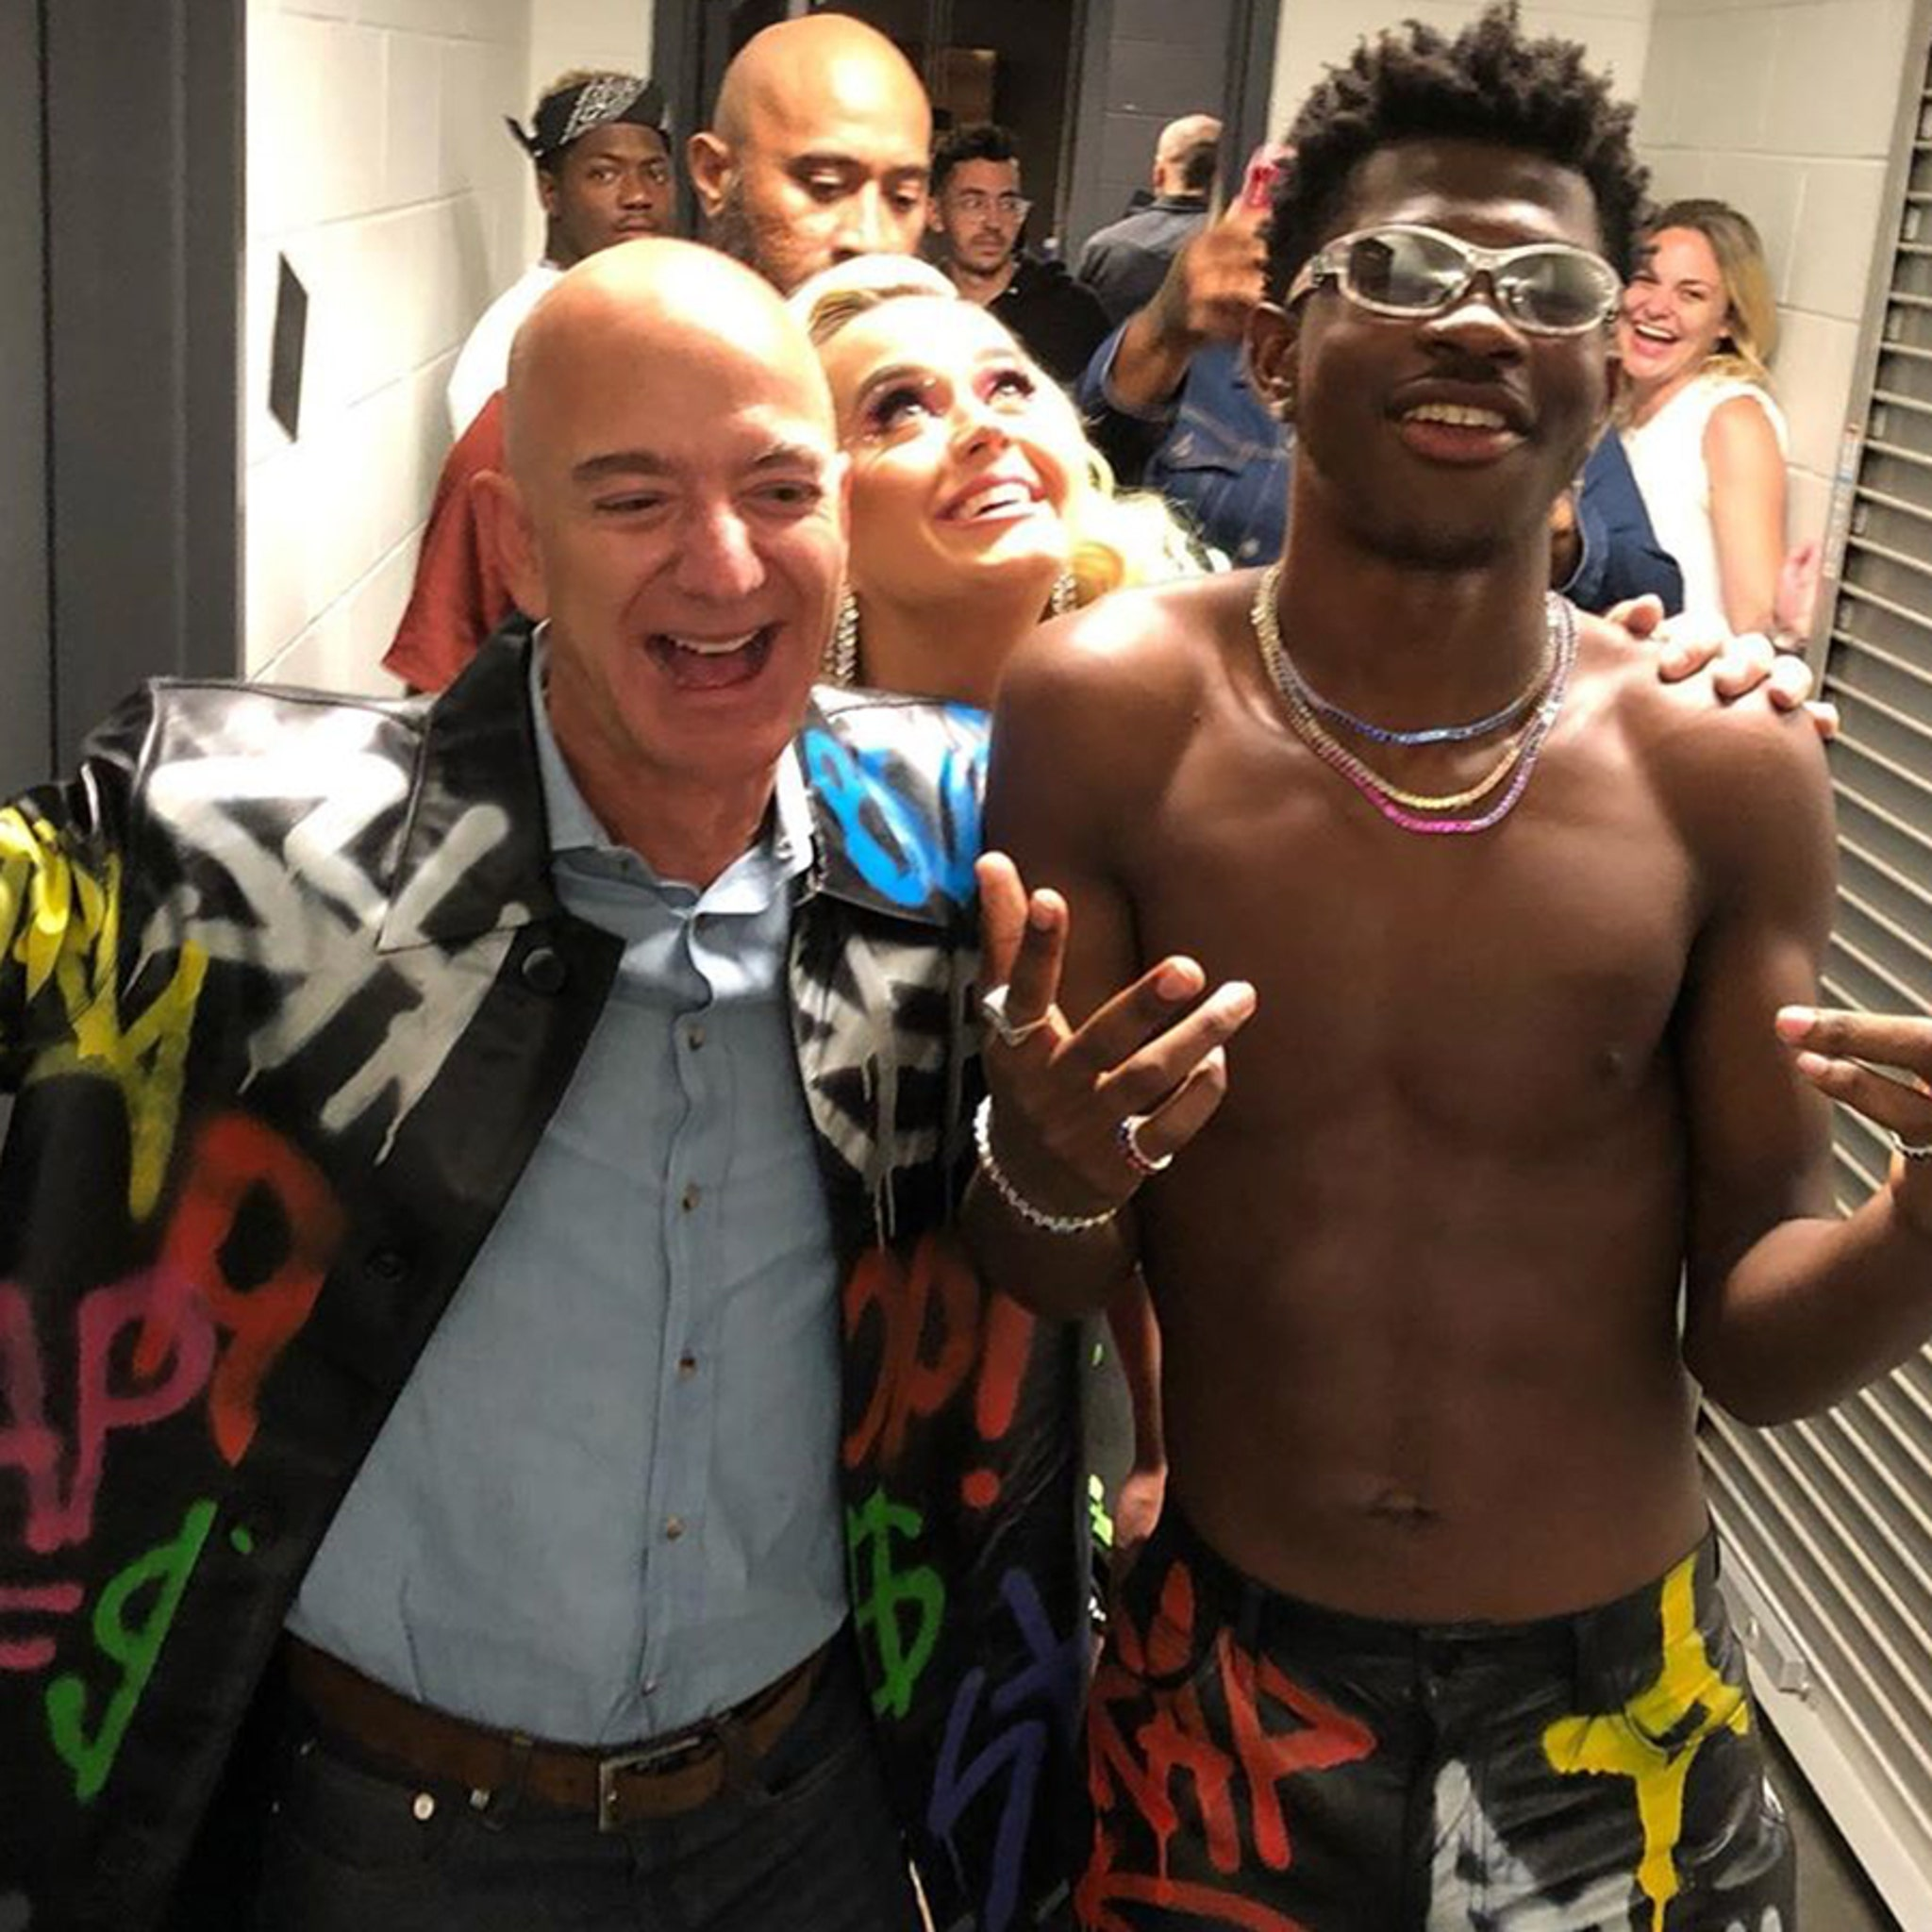 Lil Nas X, Jeff Bezos and Katy Perry Party at Amazon's Employees Bash